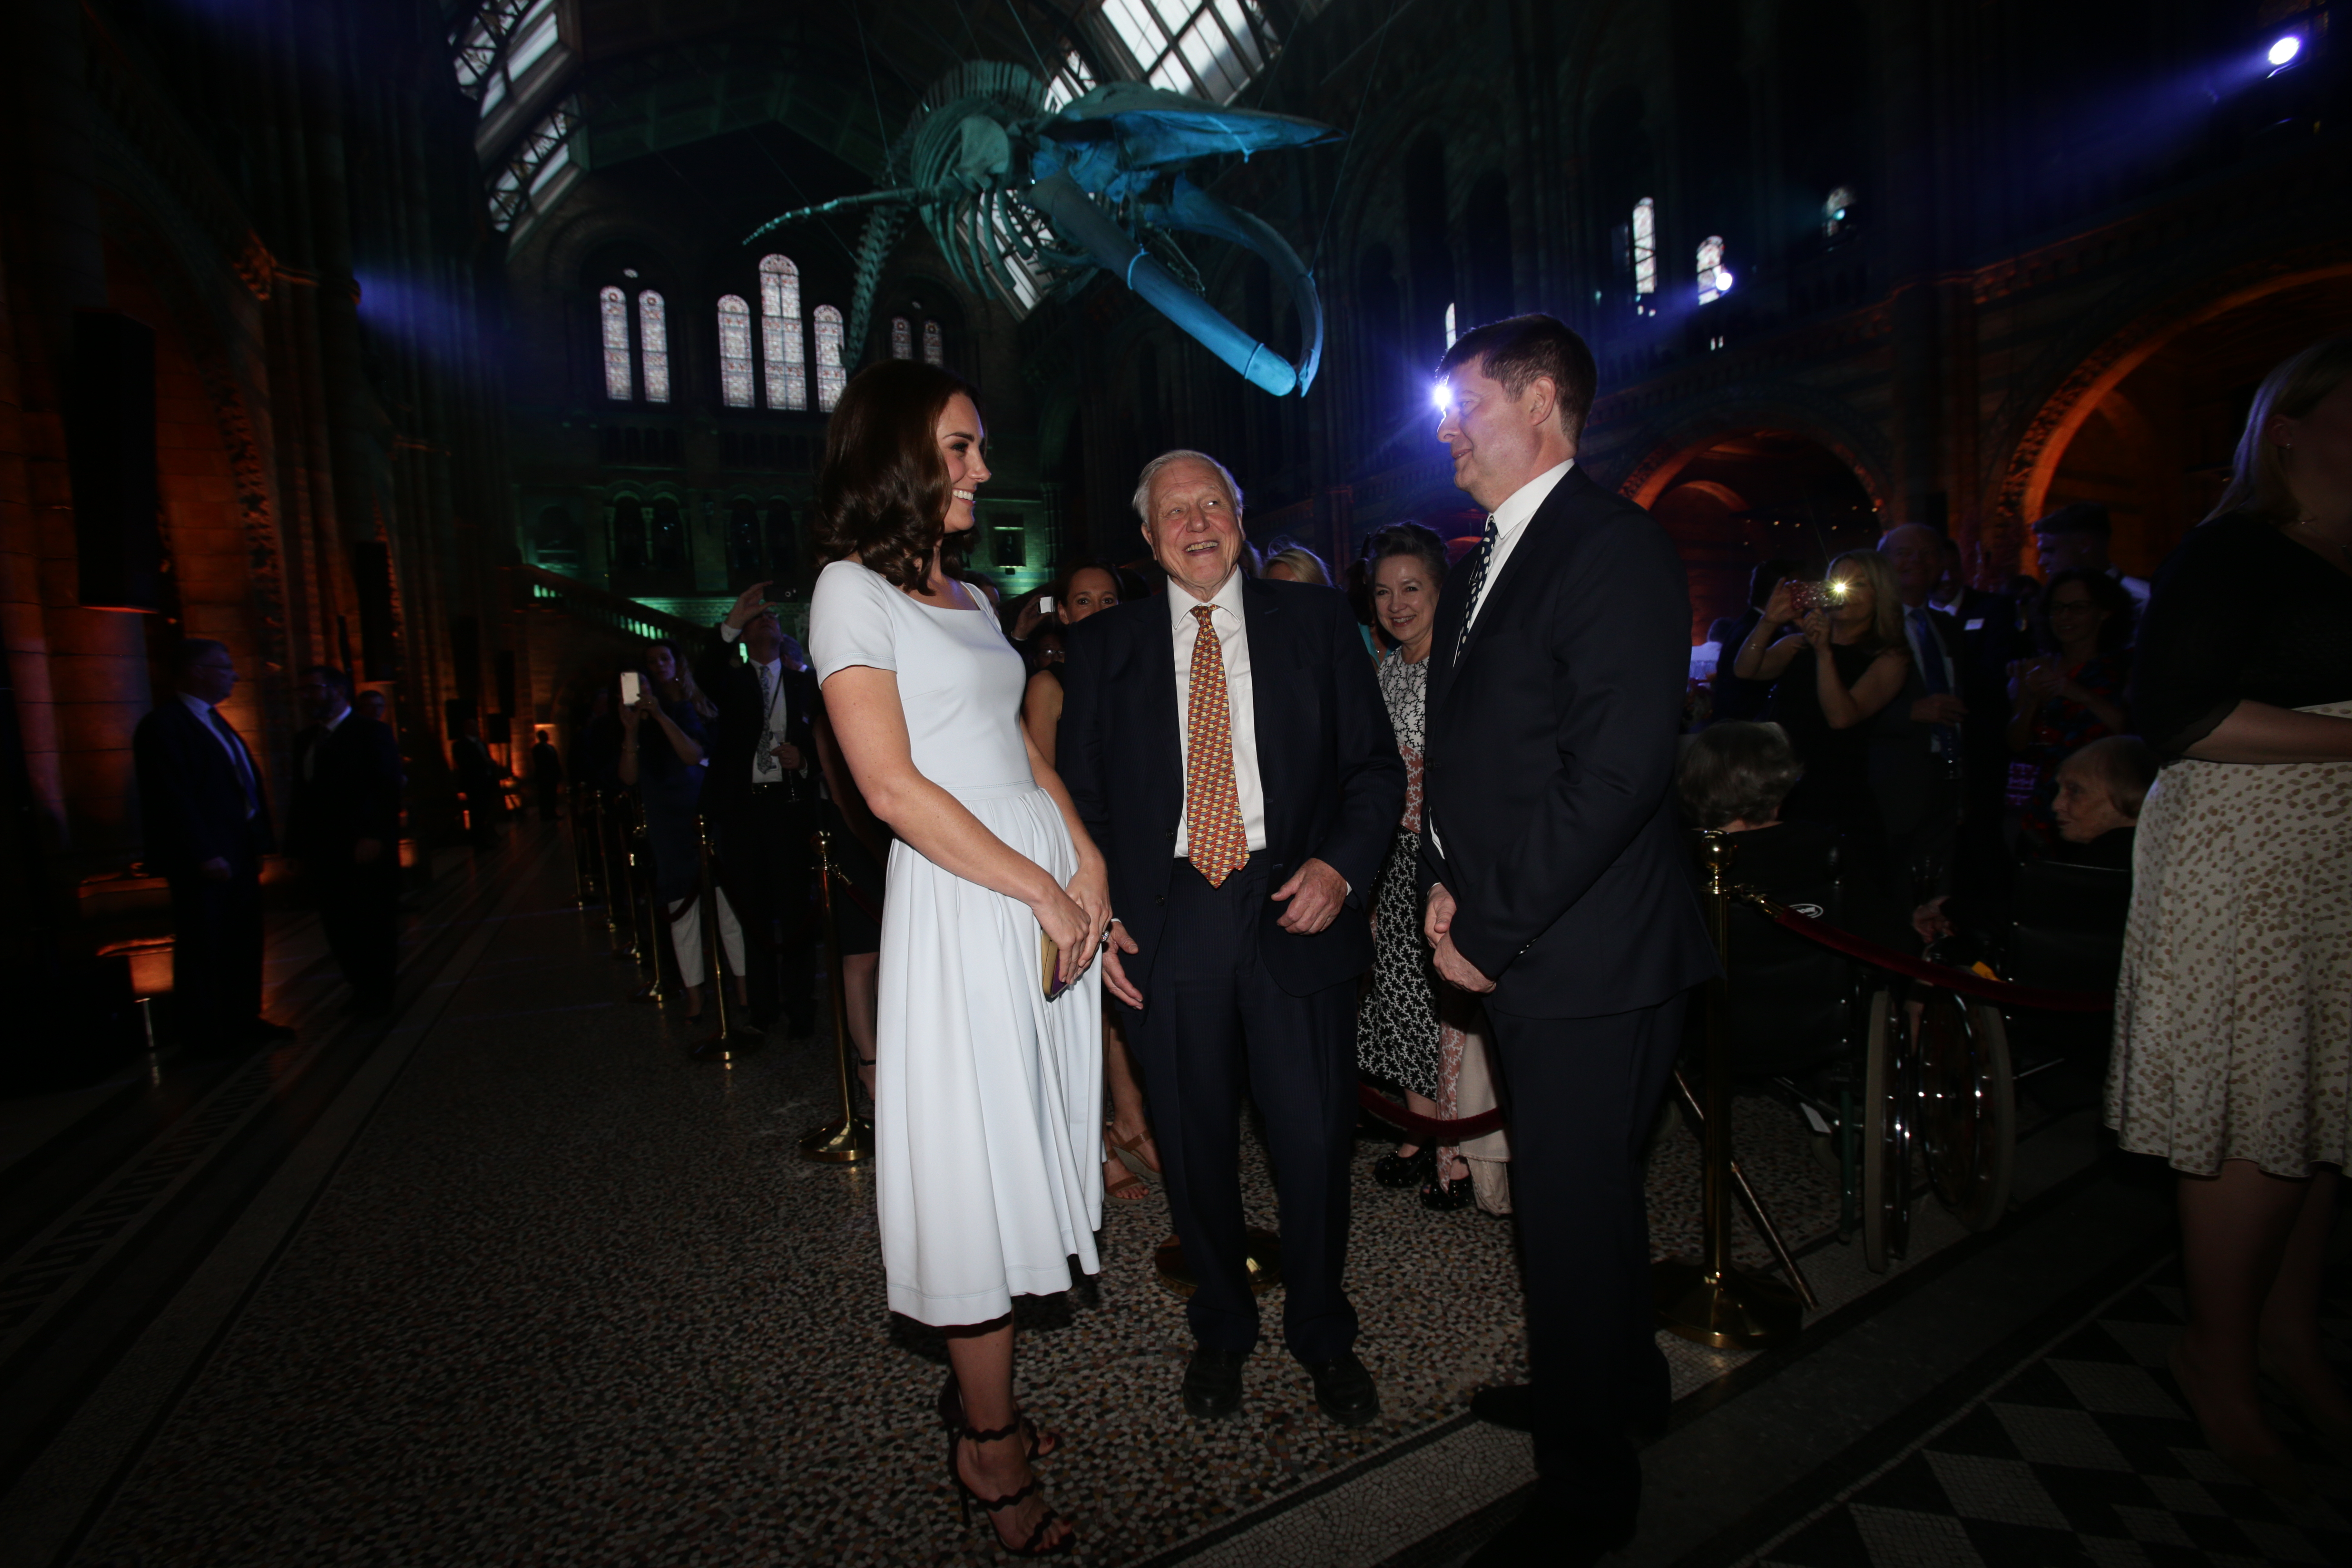 LONDON, UNITED KINGDOM - JULY 13: Catherine, Duchess of Cambridge and Sir David Attenborough attend the reopening of Hintze Hall at the Natural History Museum on July 13, 2017 in London, England.. (Photo by Yui Mok - WPA Pool/Getty Images)